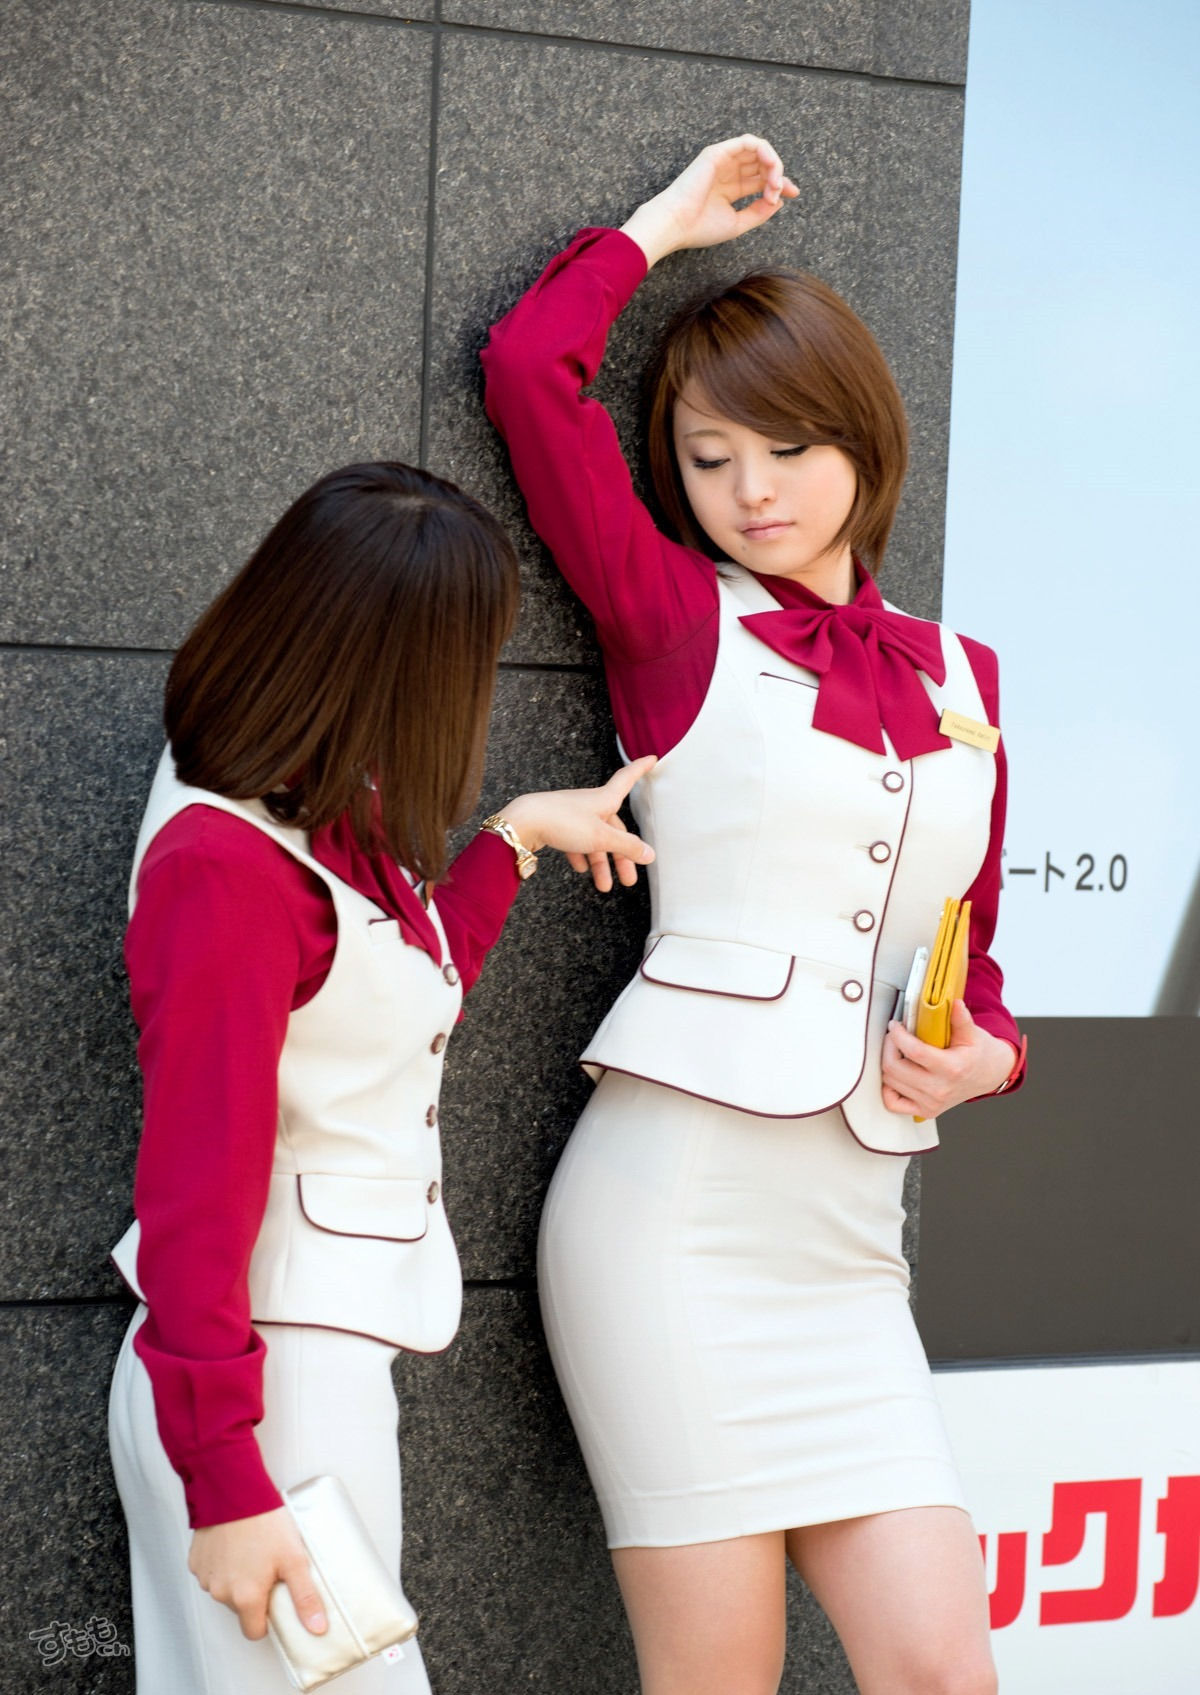 tight_skirt_5748-115